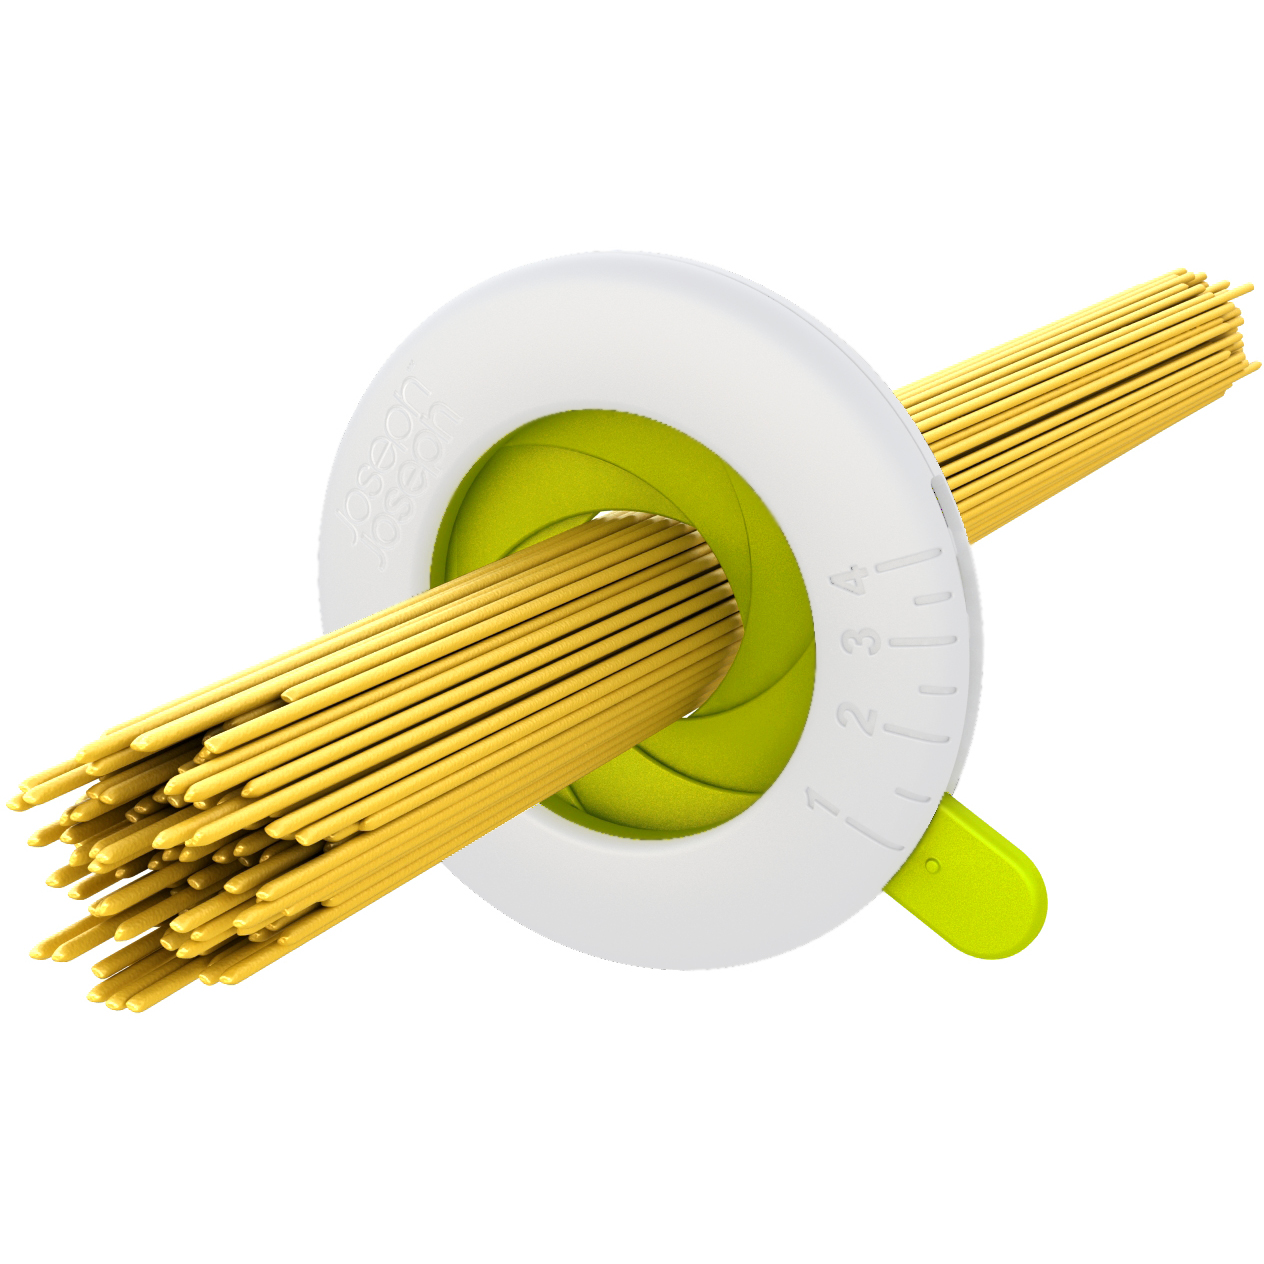 Joseph Joseph Green and White Spaghetti Measurer